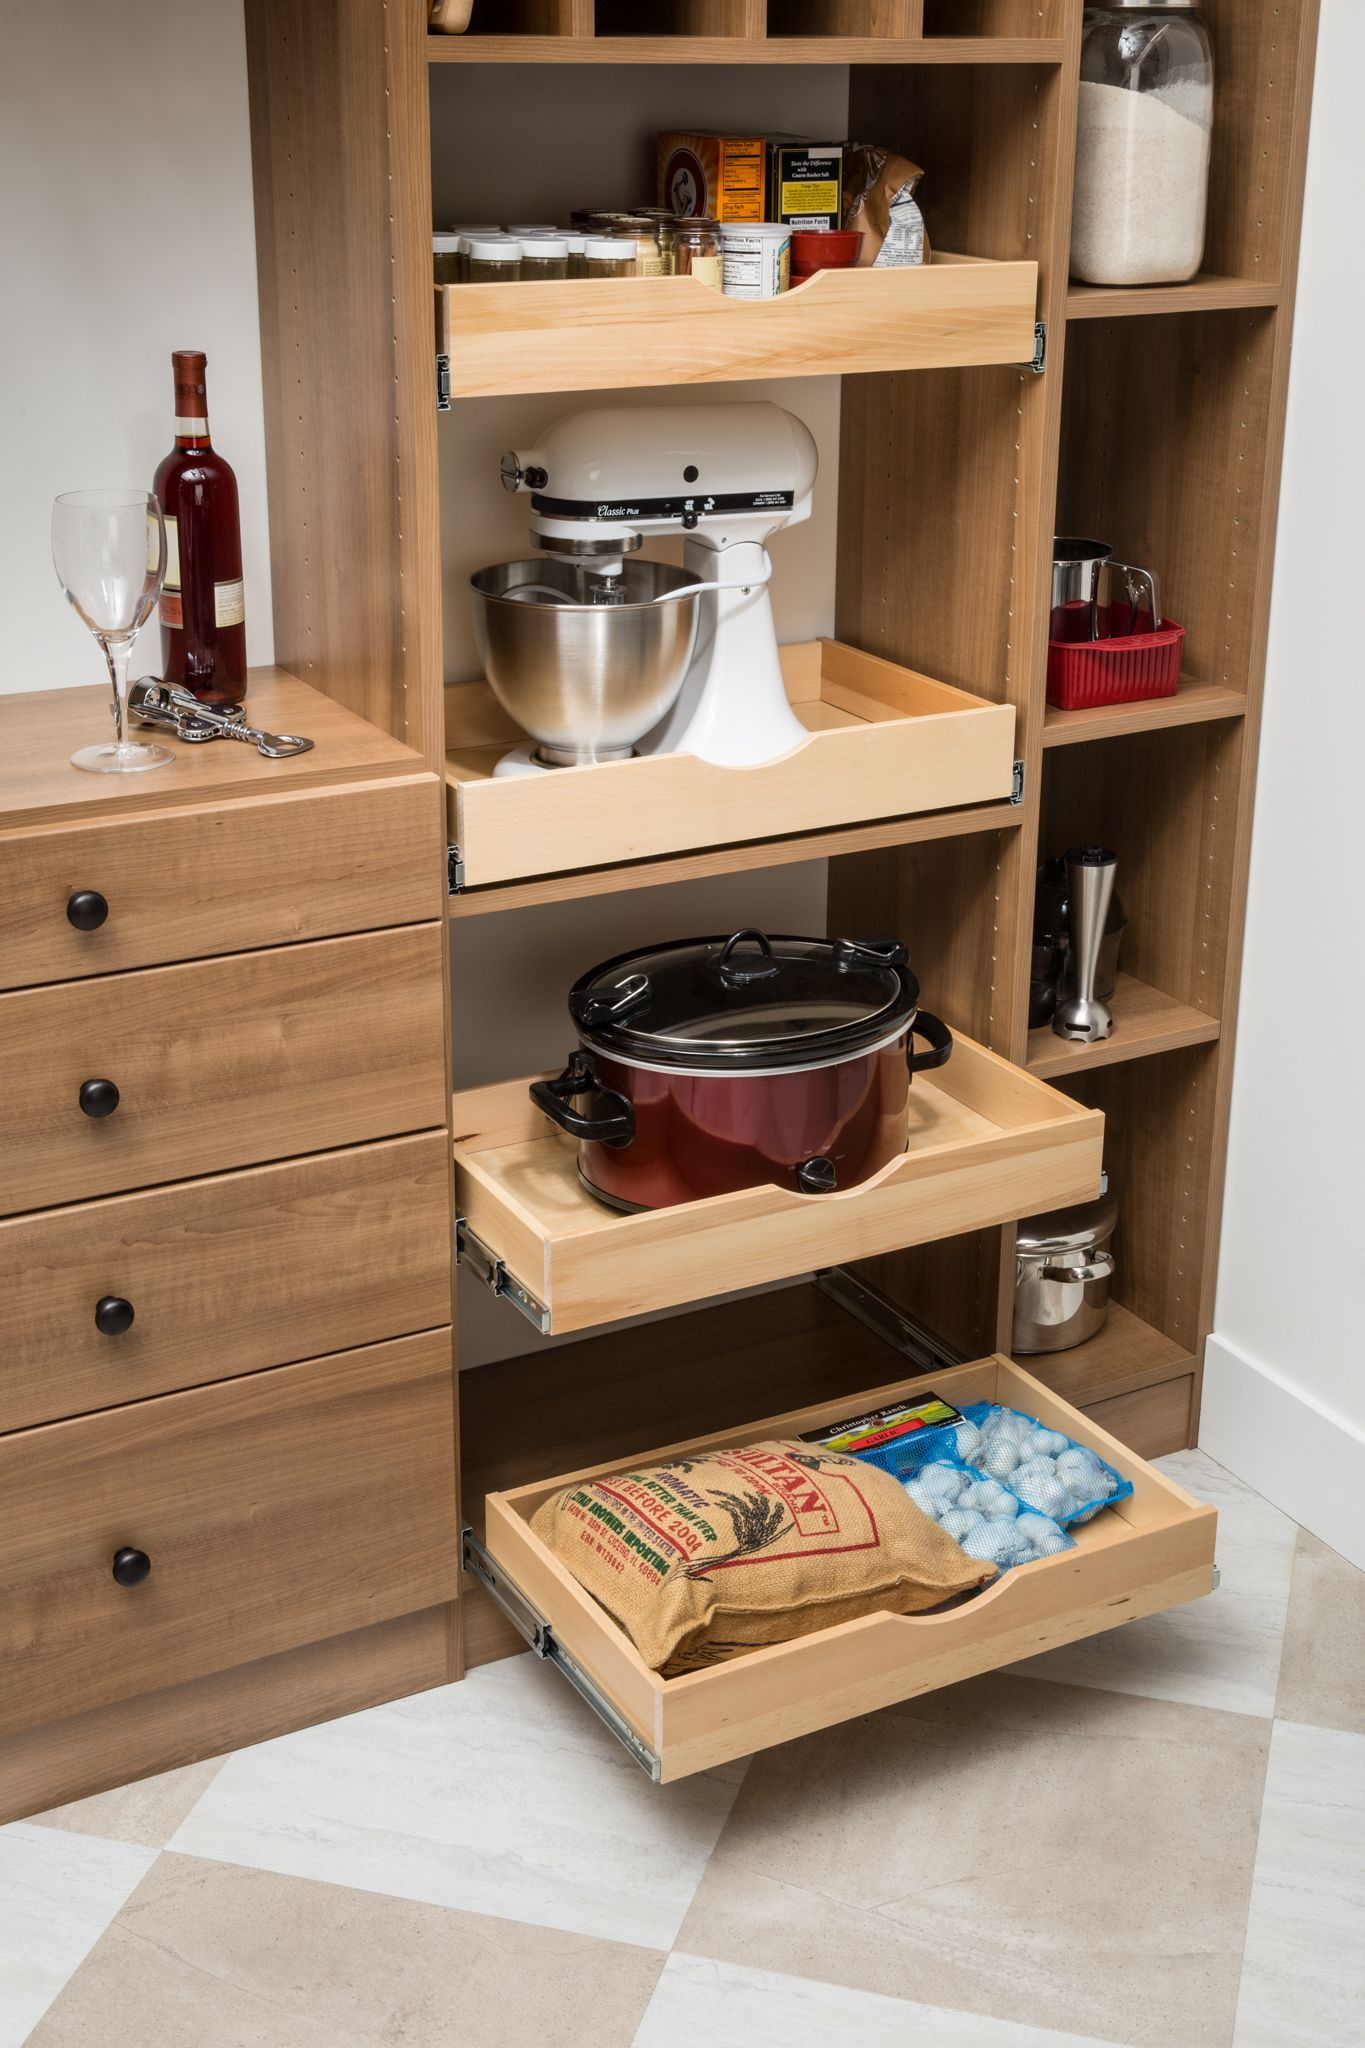 slide out storage small kitchen storage solutions diy kitchen storage kitchen storage solutions on kitchen organization for small spaces id=65401